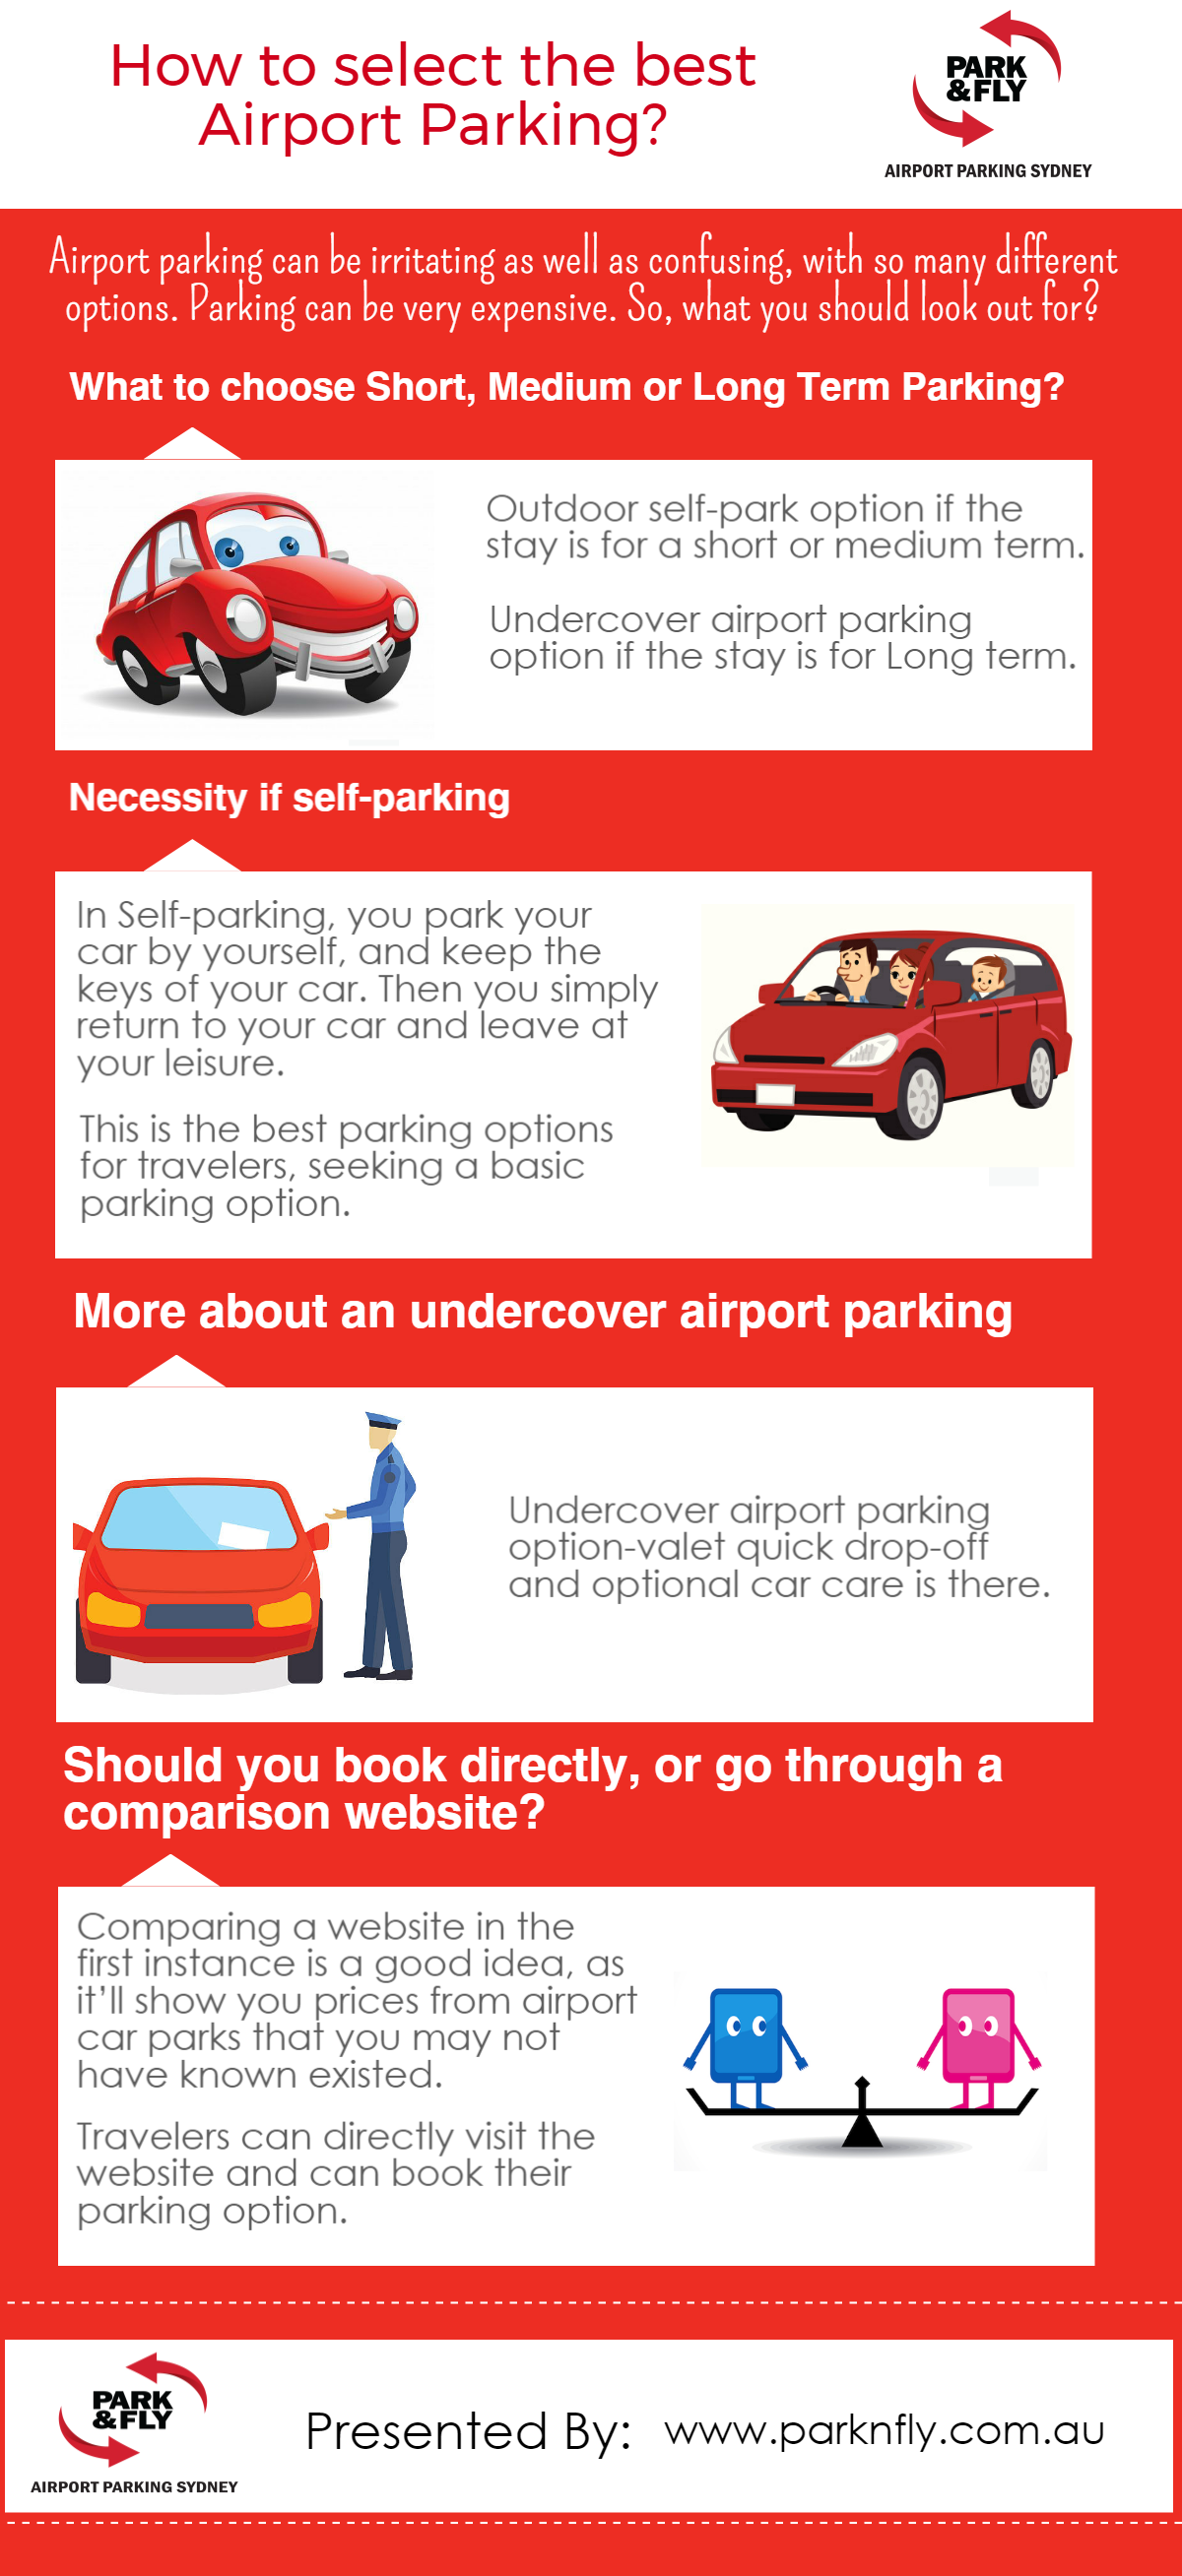 Airport Parking Can Be Irritating As Well As Confusing With So Many